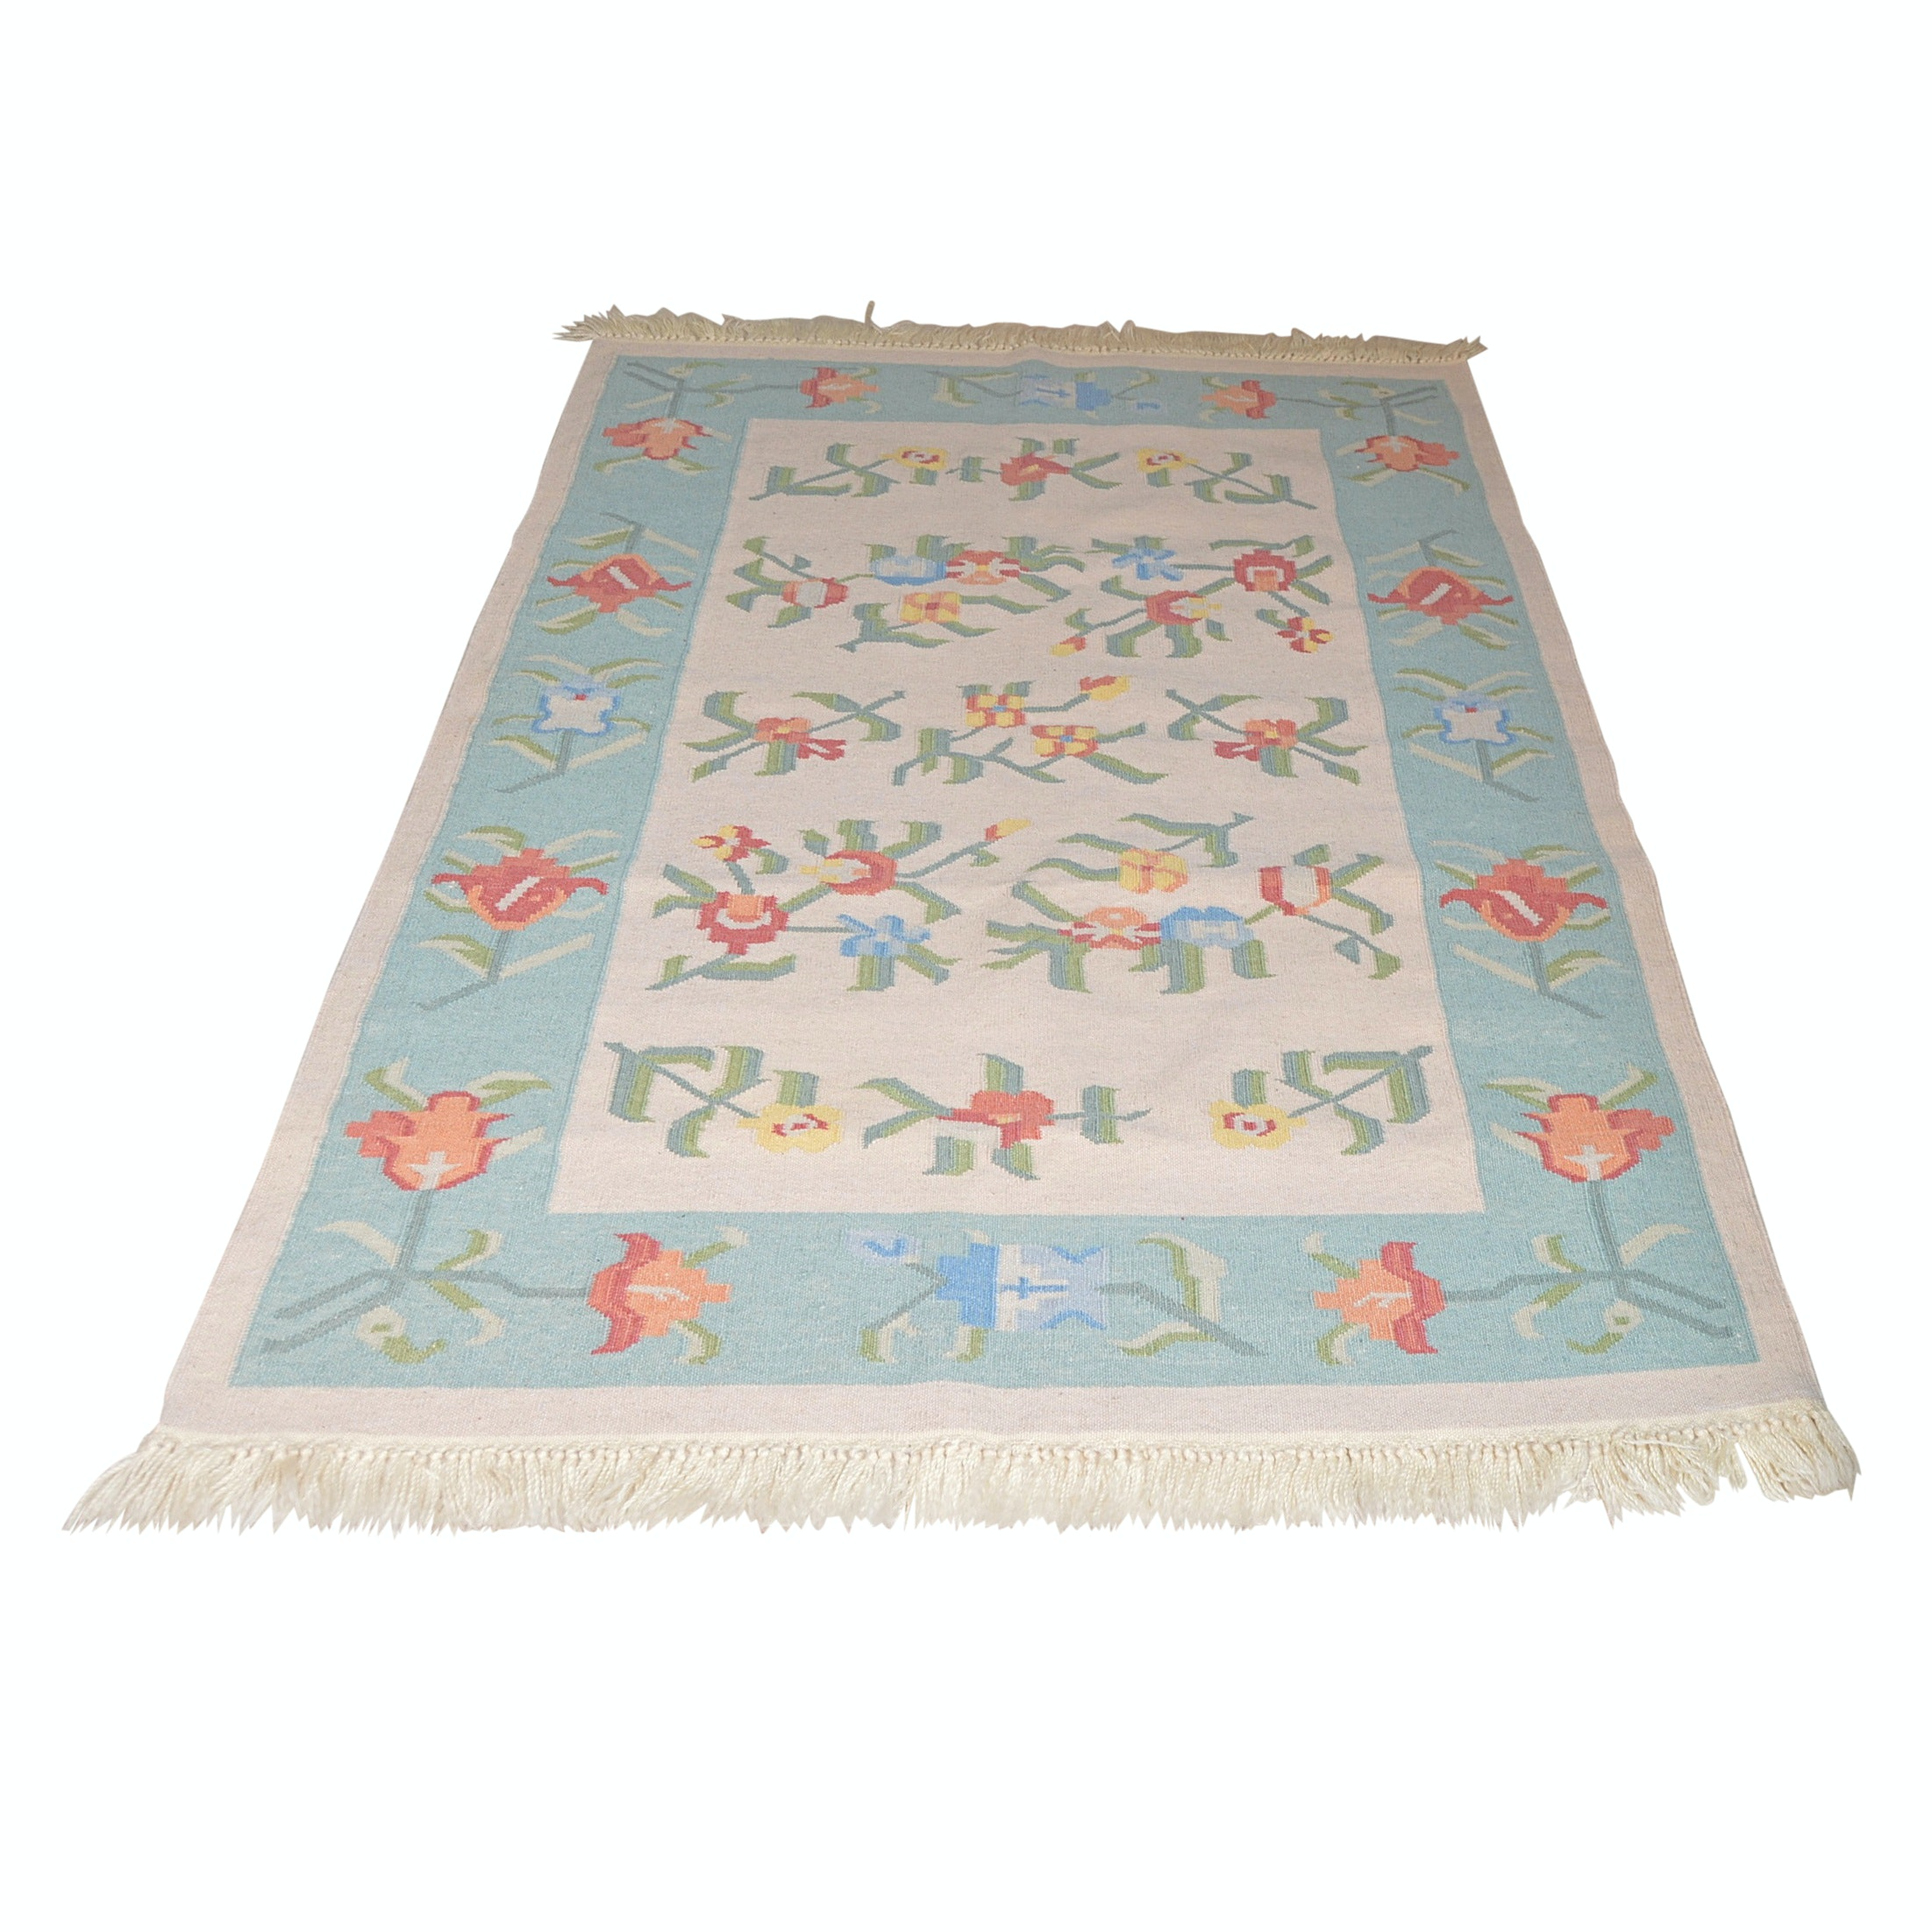 Handwoven Indian Wool Accent Rug